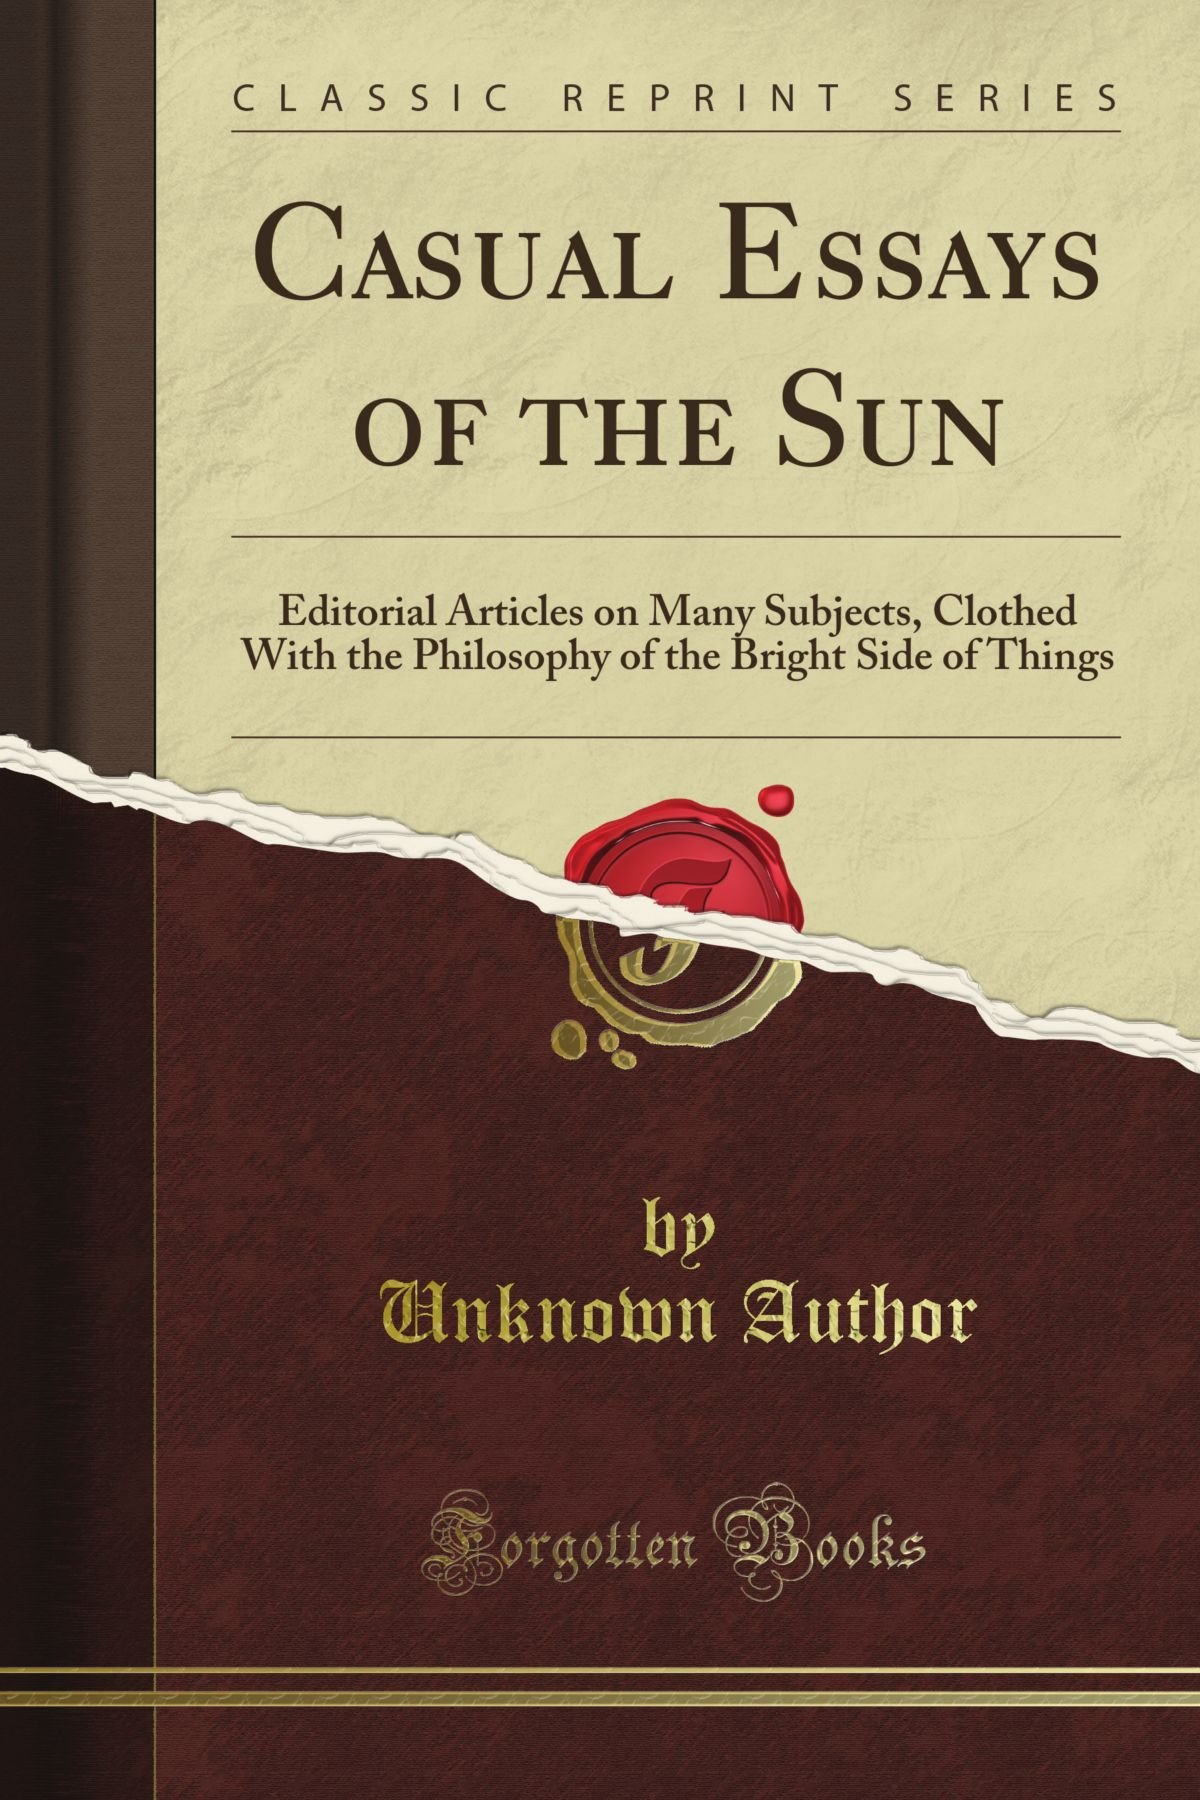 Read Online Casual Essays of the Sun: Editorial Articles on Many Subjects, Clothed With the Philosophy of the Bright Side of Things (Classic Reprint) ebook